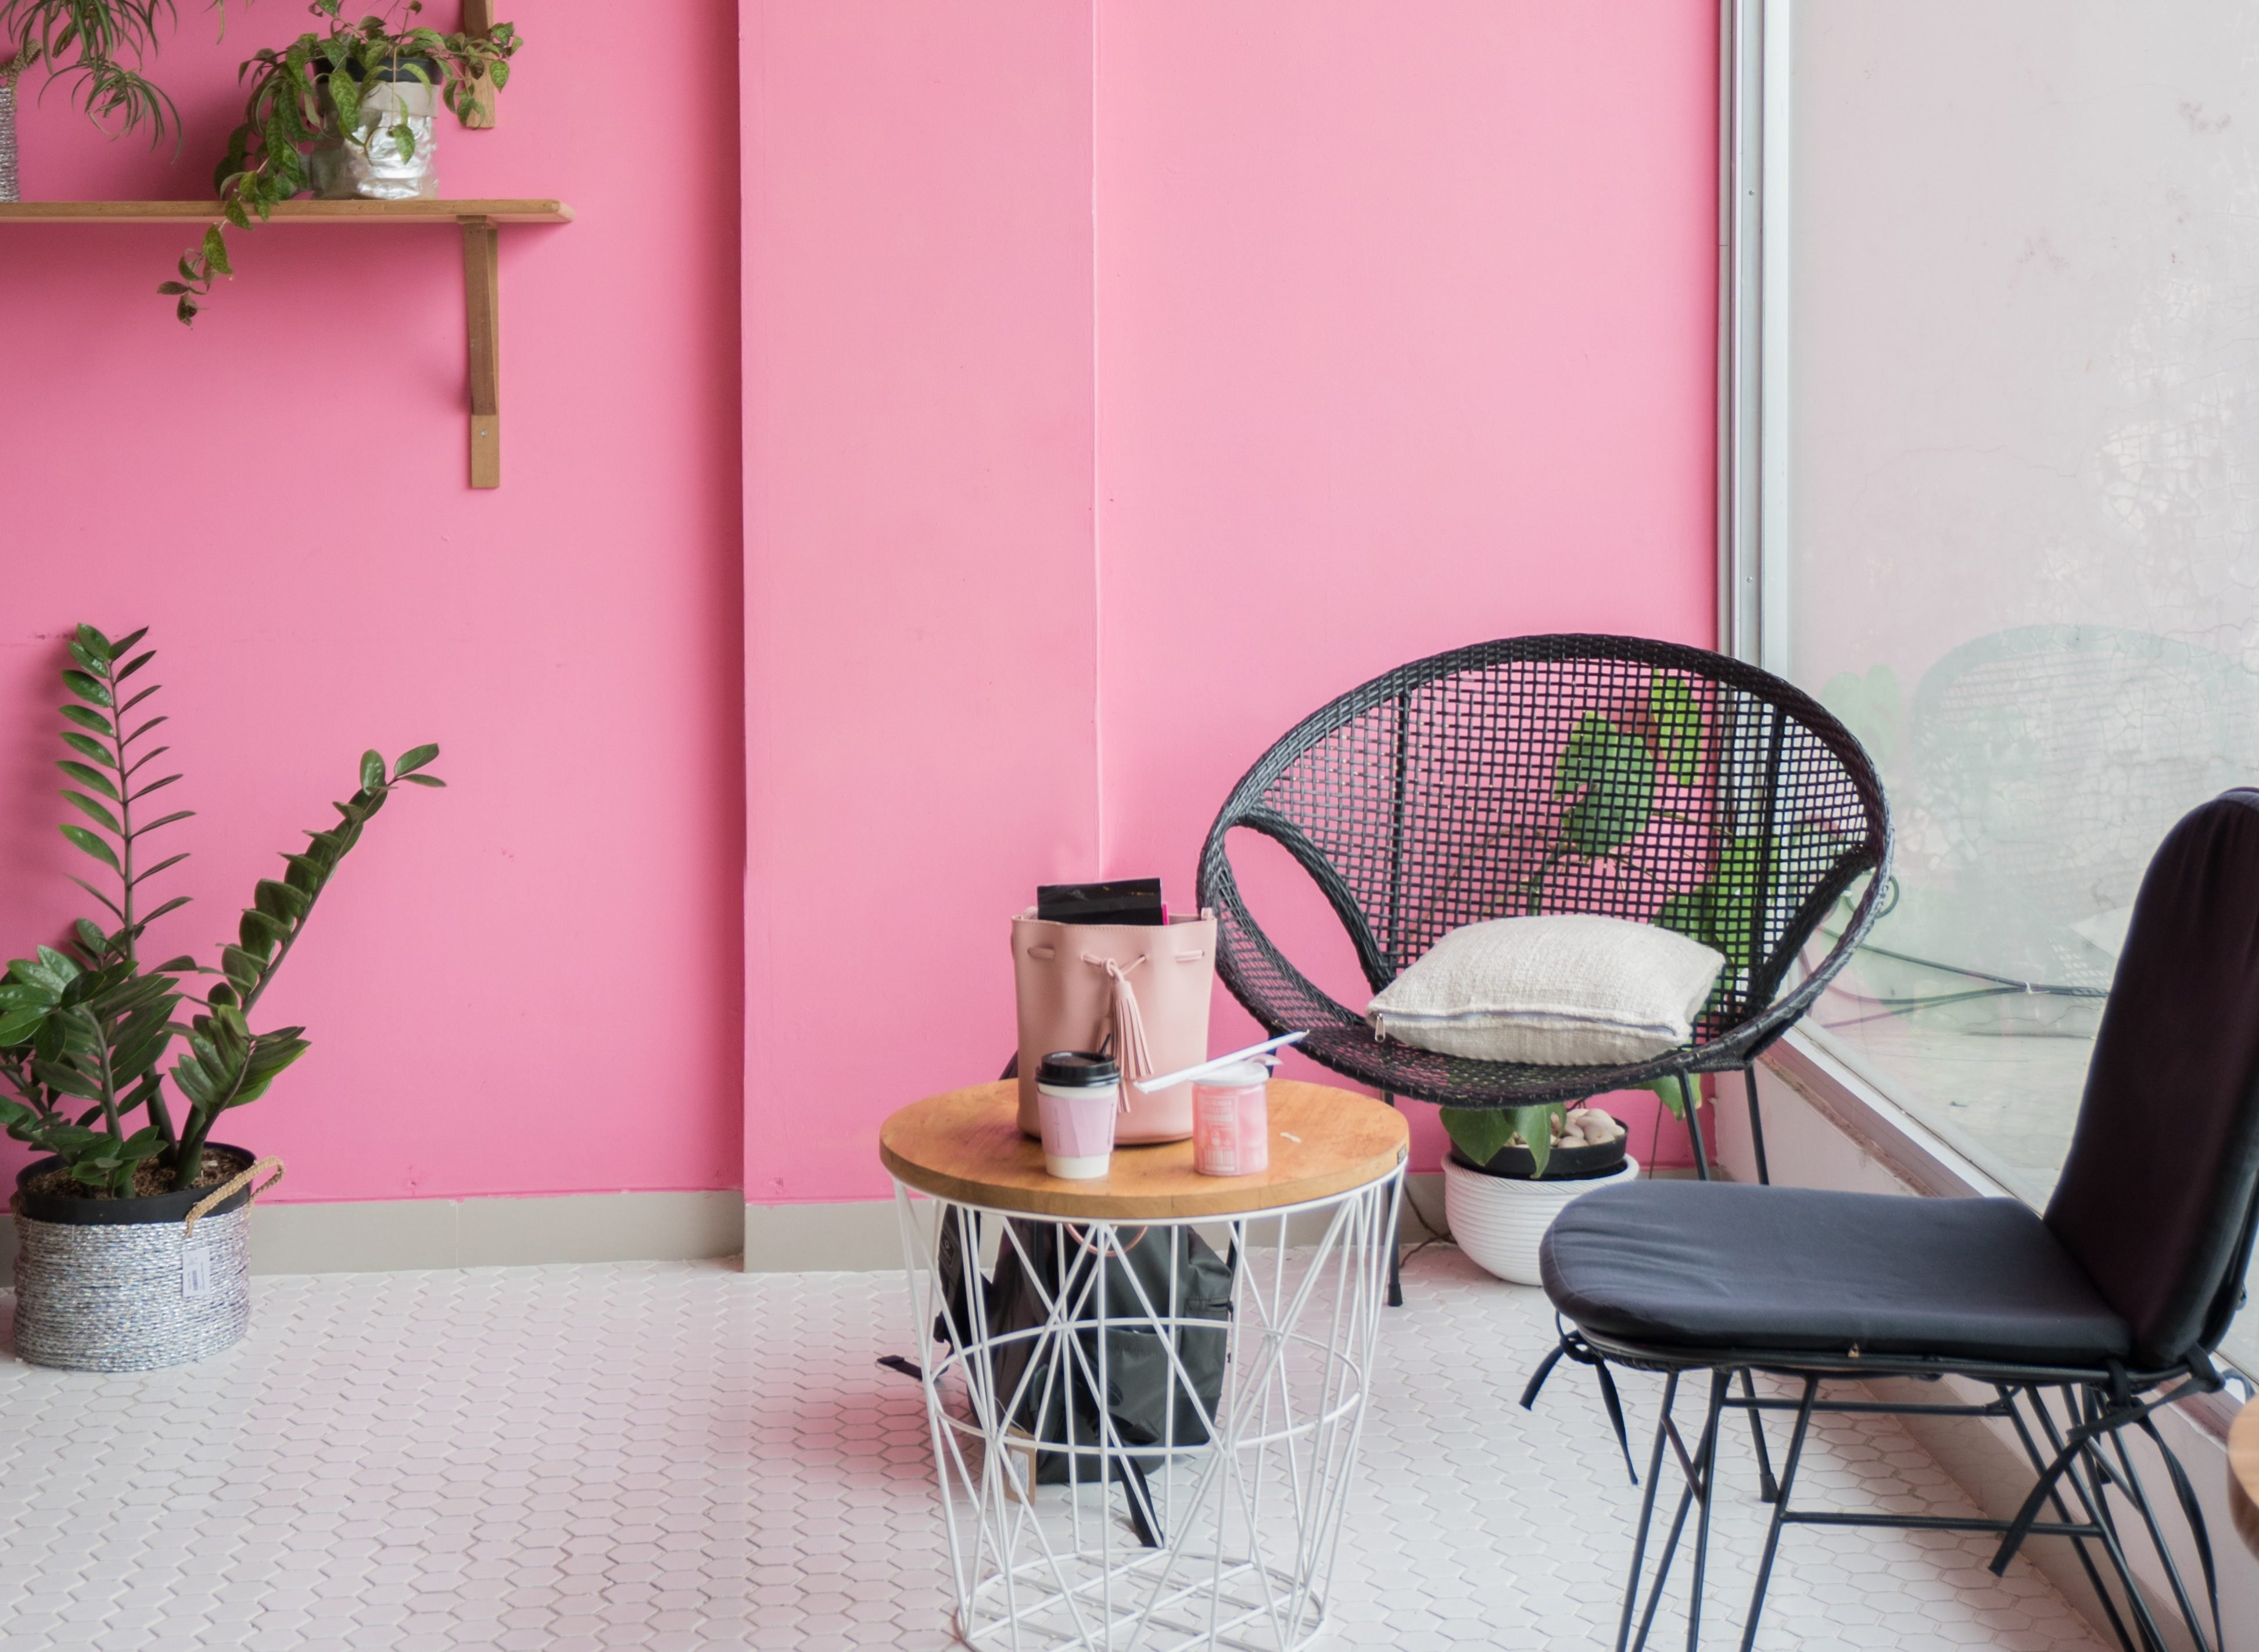 The hottest 2019 interior trends as picked by designers - 2019 interior design trends ...